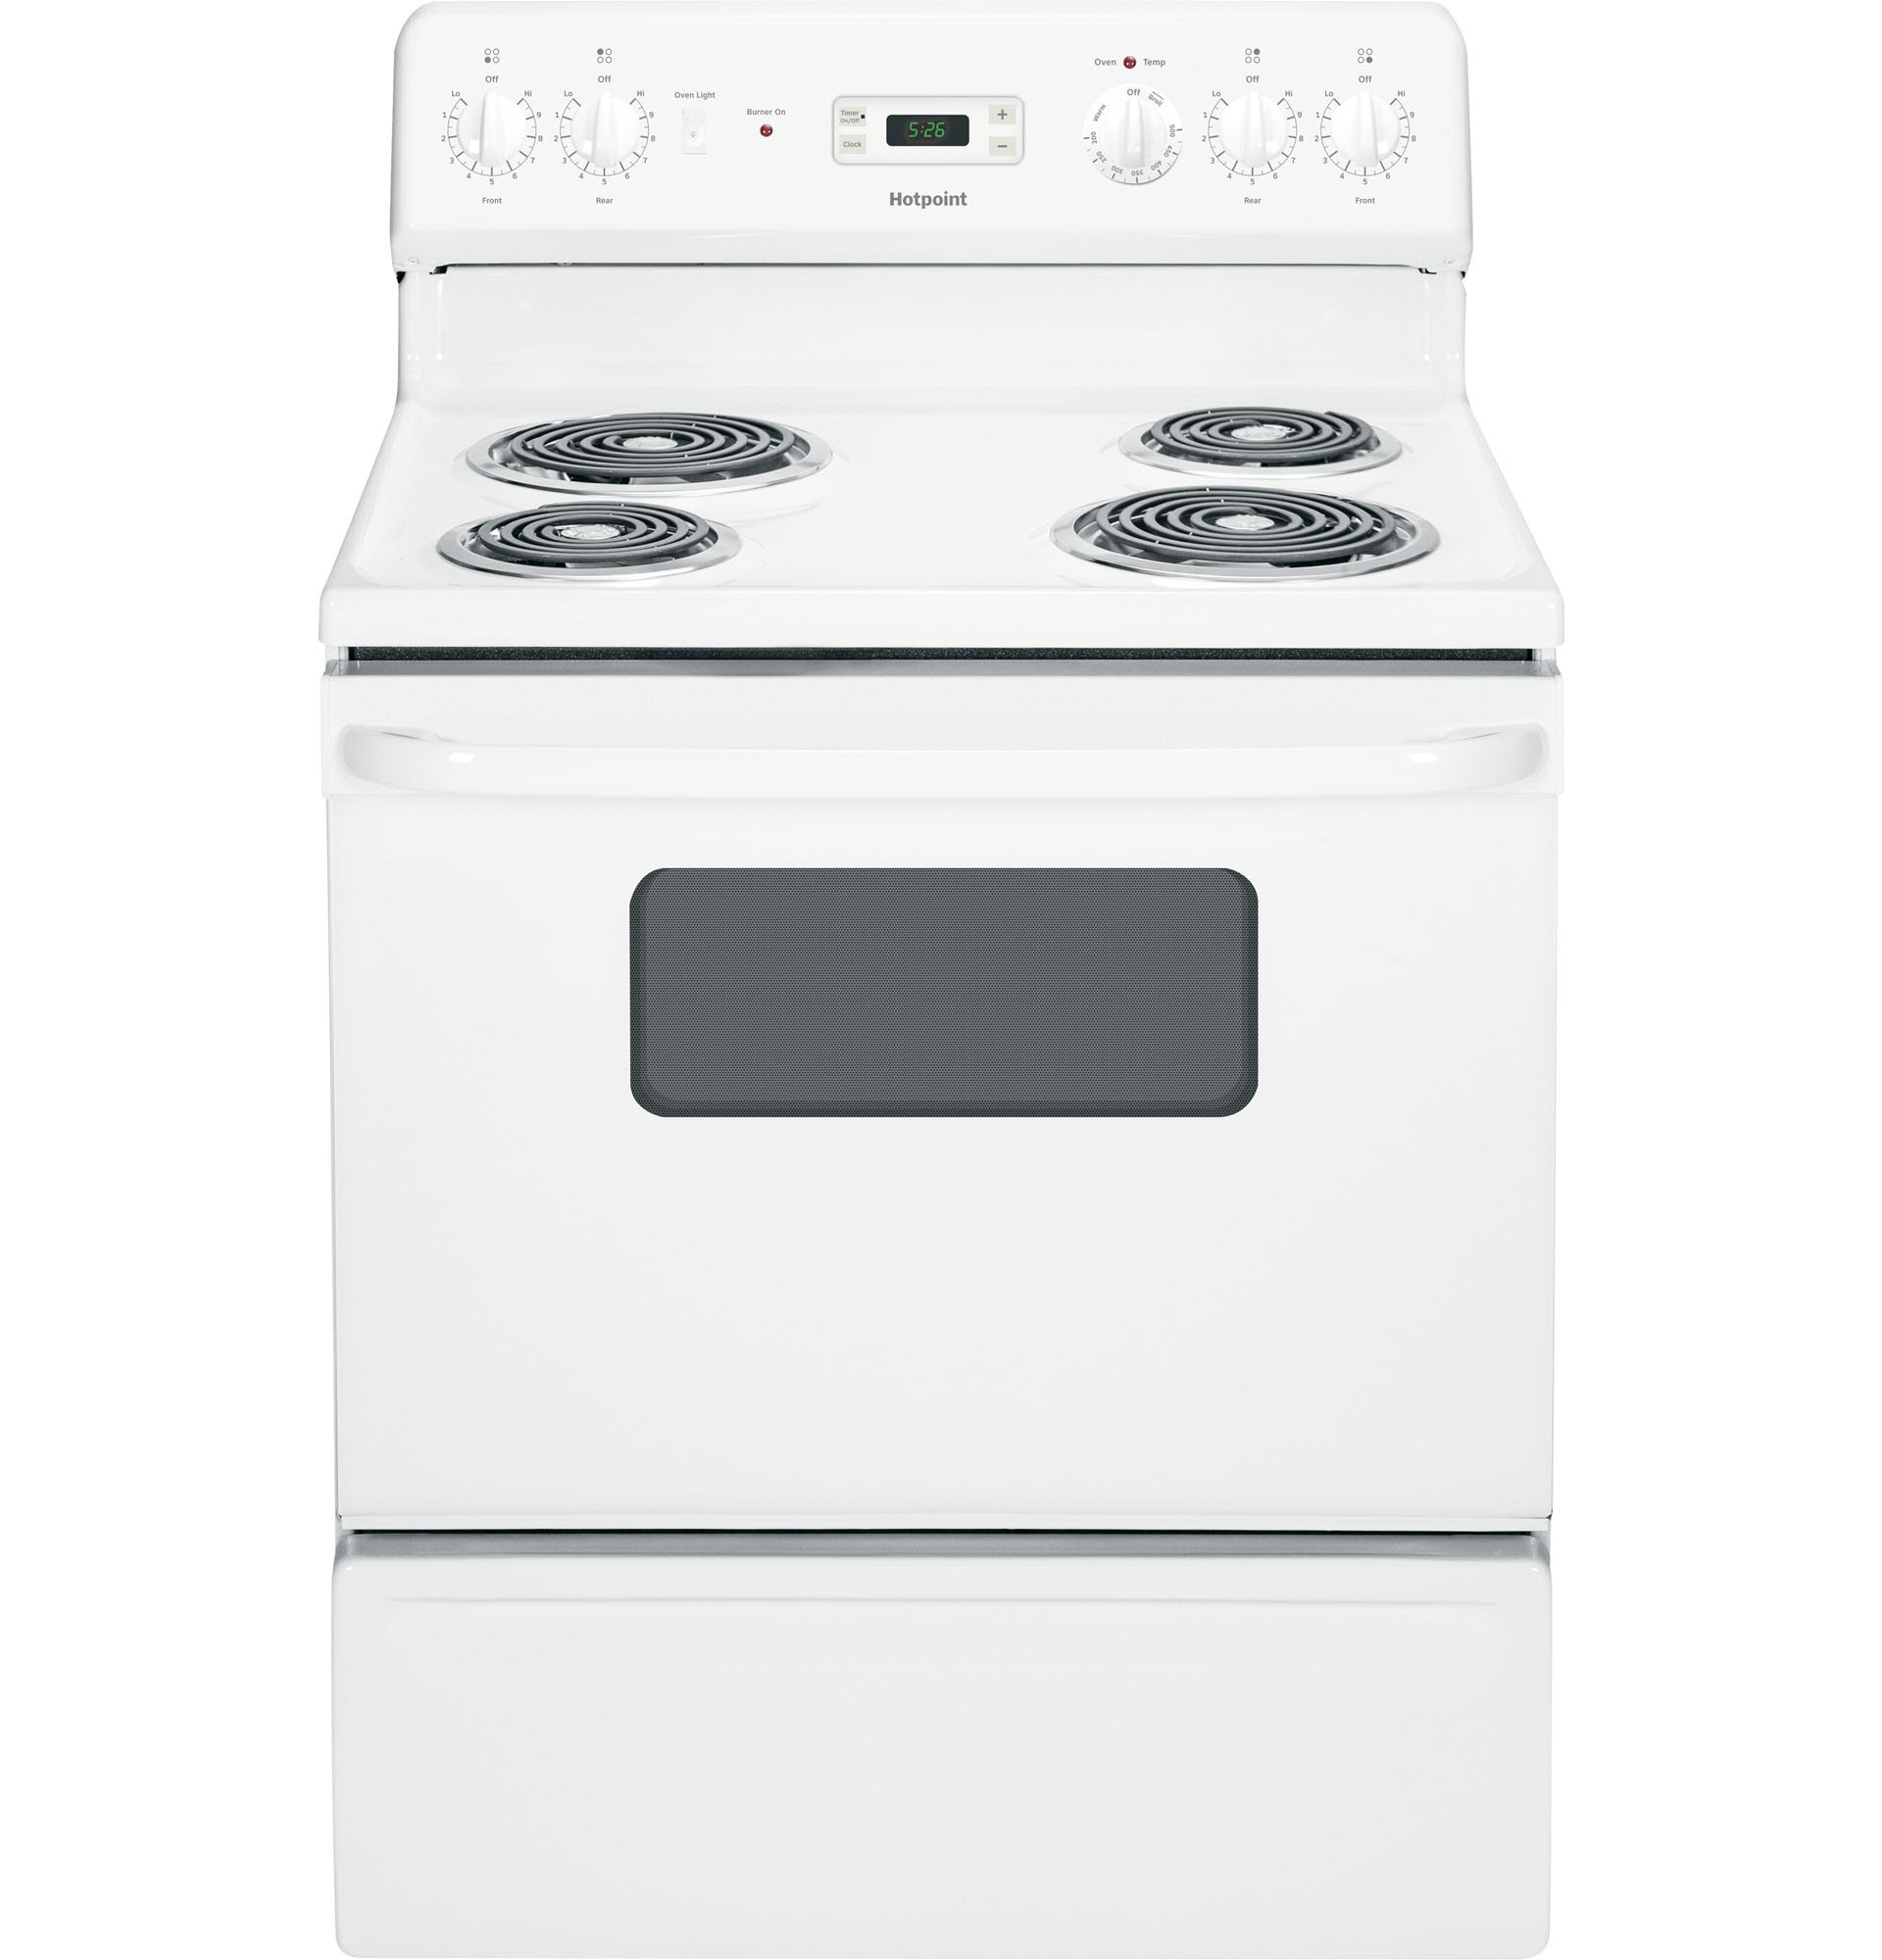 UPC Hotpoint Ranges 5 0 cu ft Electric Range in